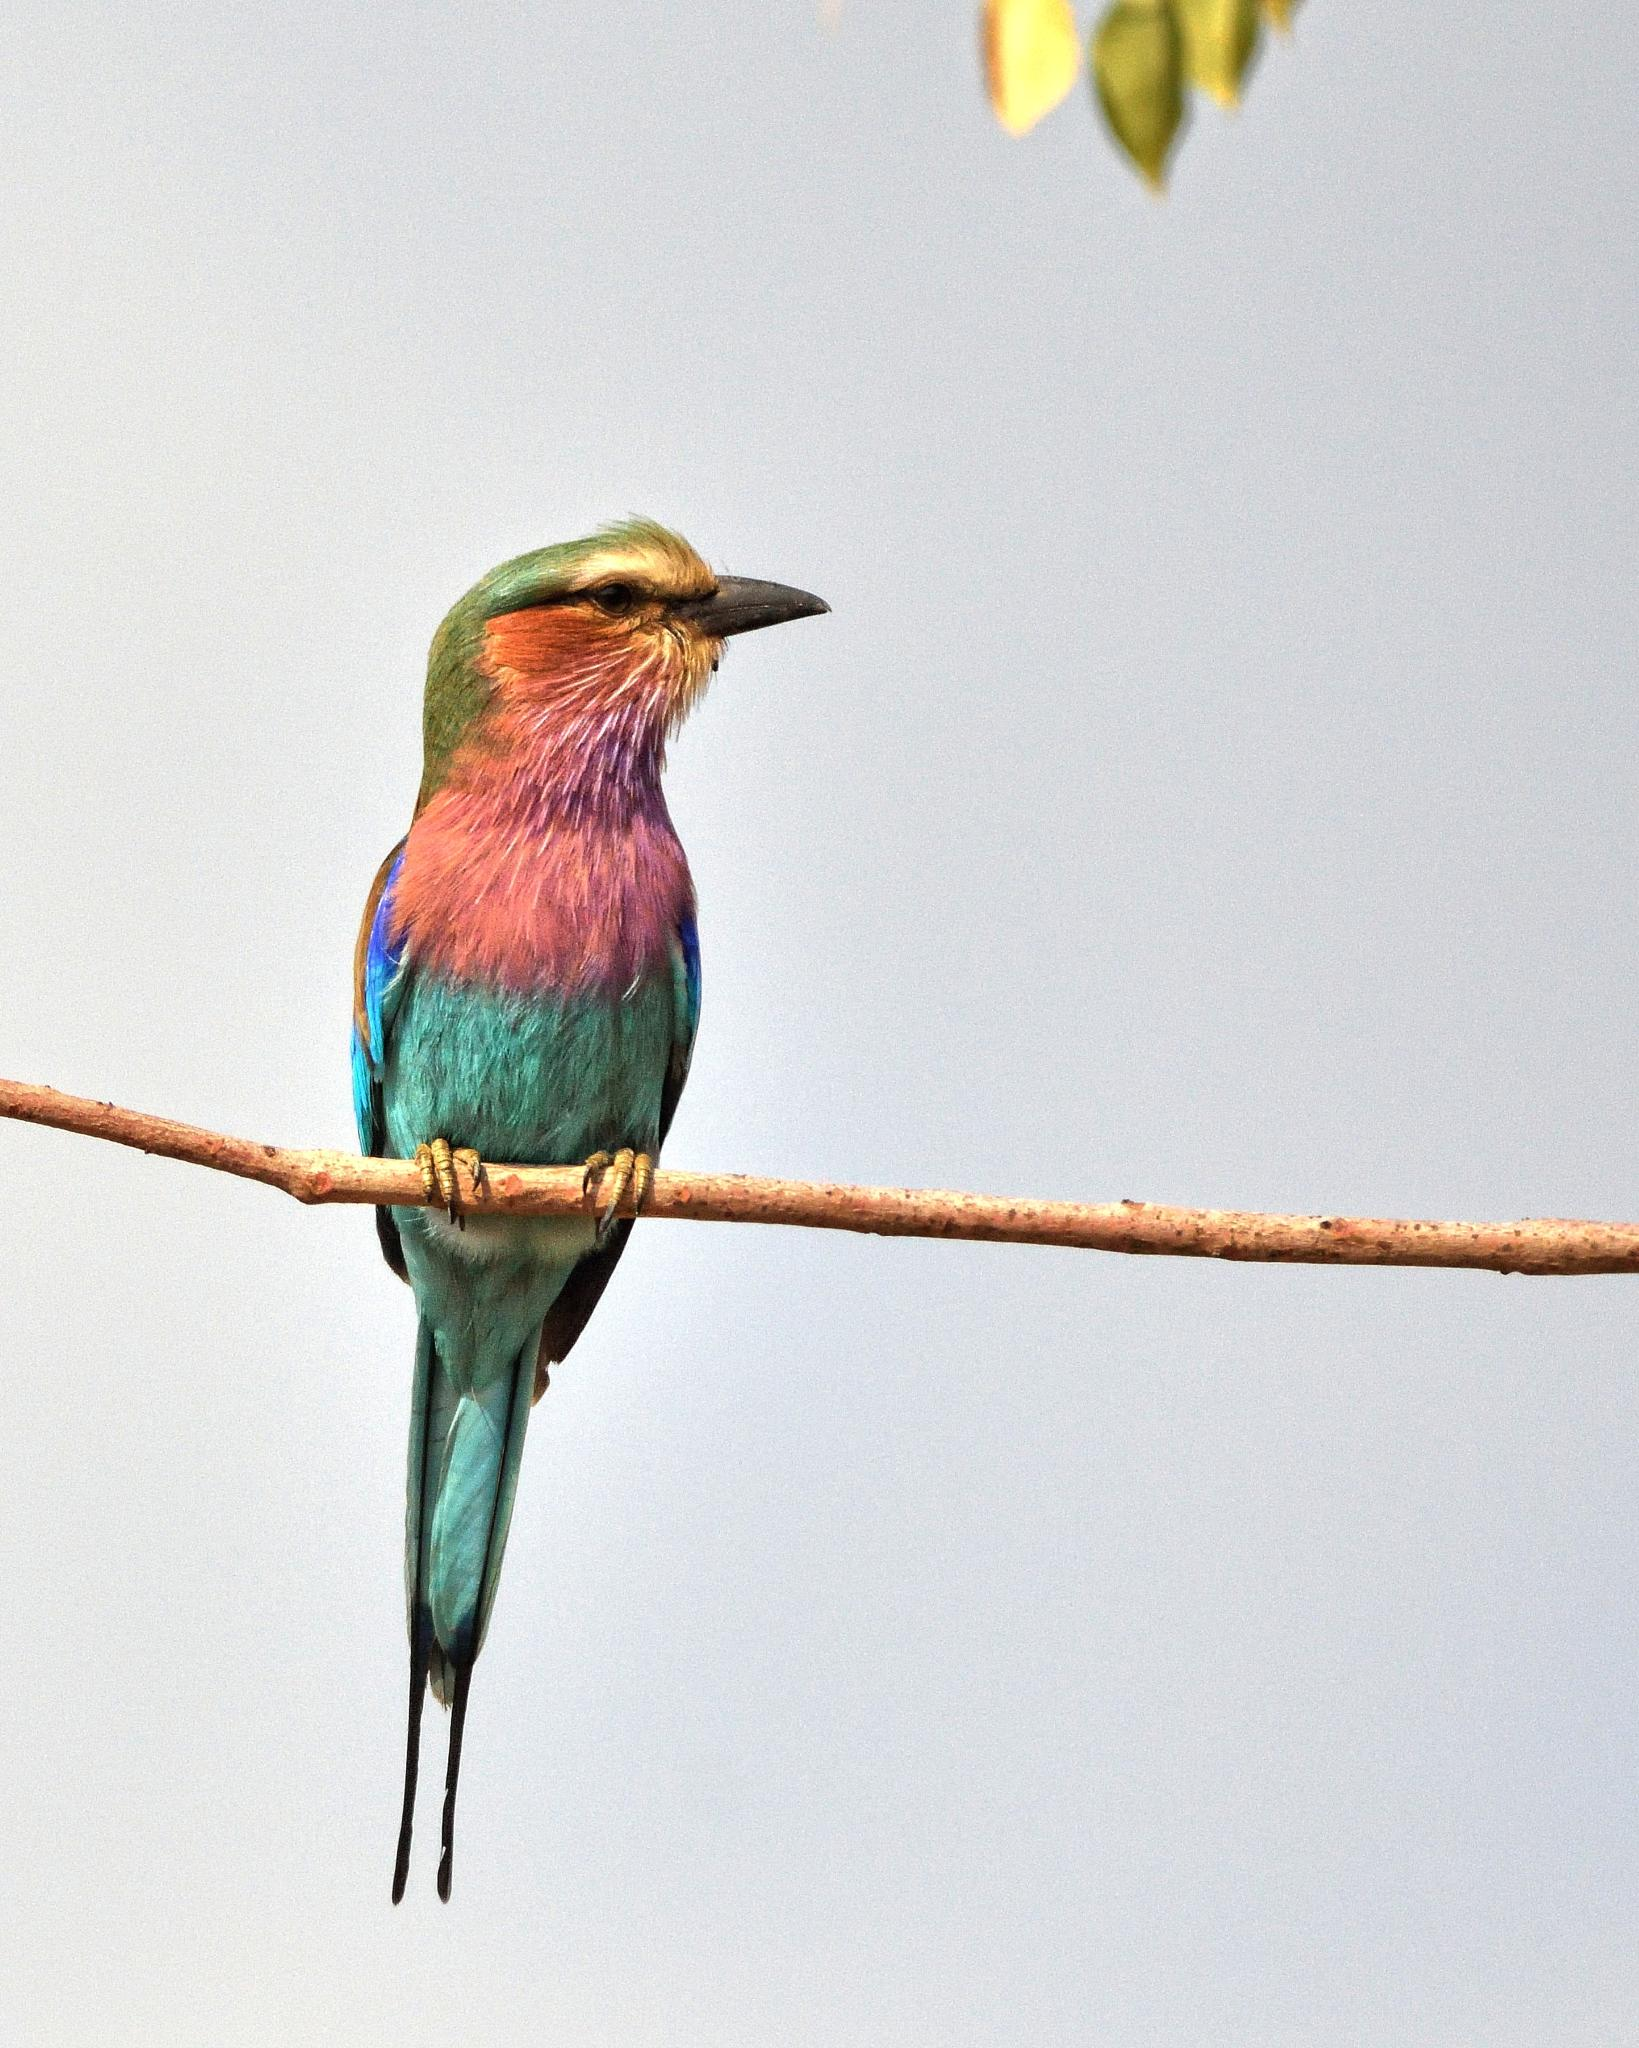 lilac-breasted roller by miwwim